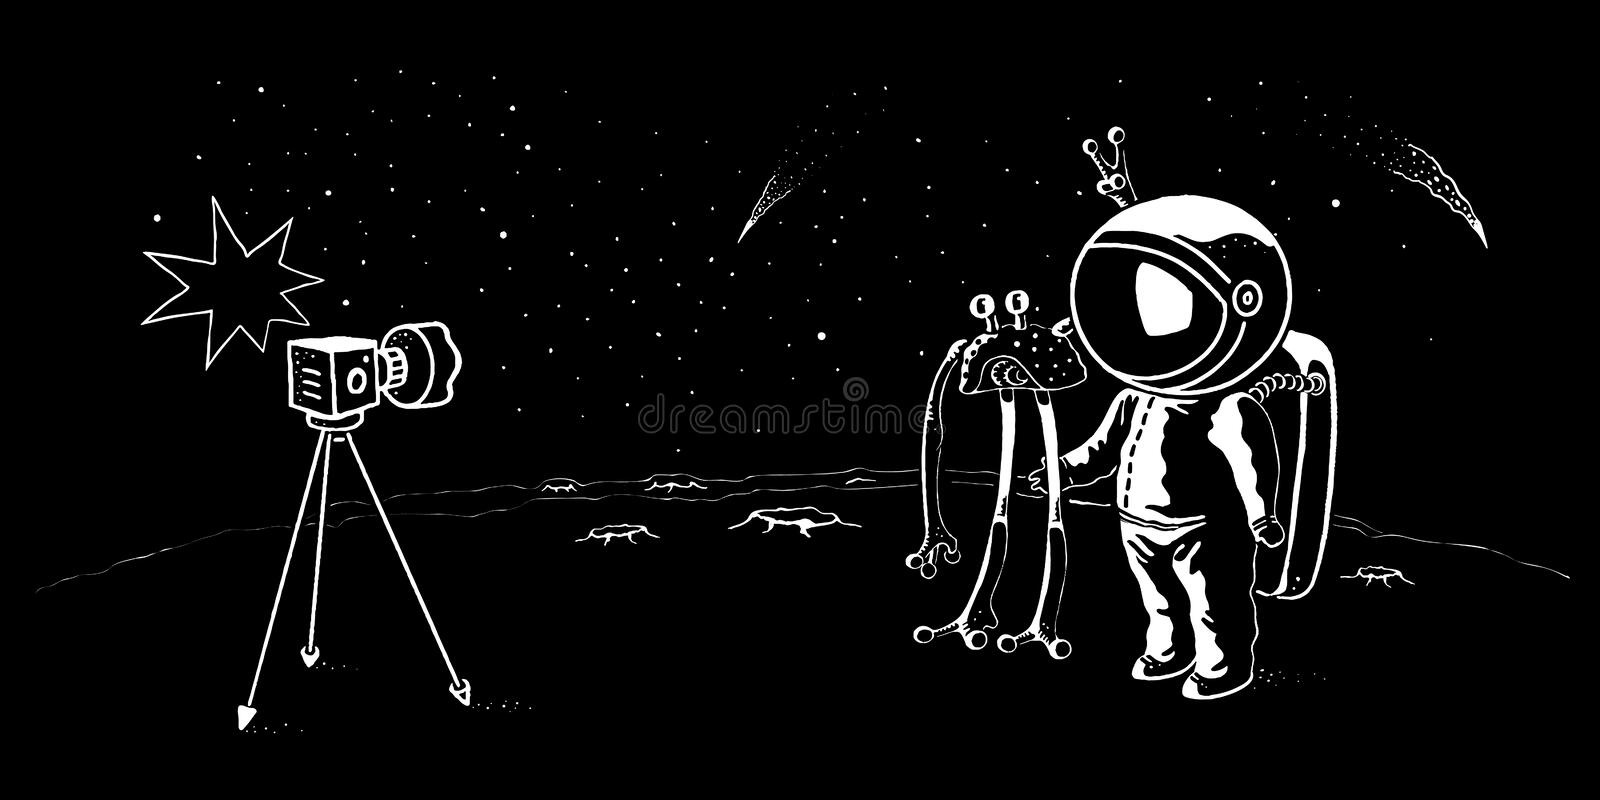 Astronaut and ufo doodle style vector illustration. Pioneer spaceman meets cosmic creature. Astronaut and ufo doodle style vector illustration. Pioneer spaceman